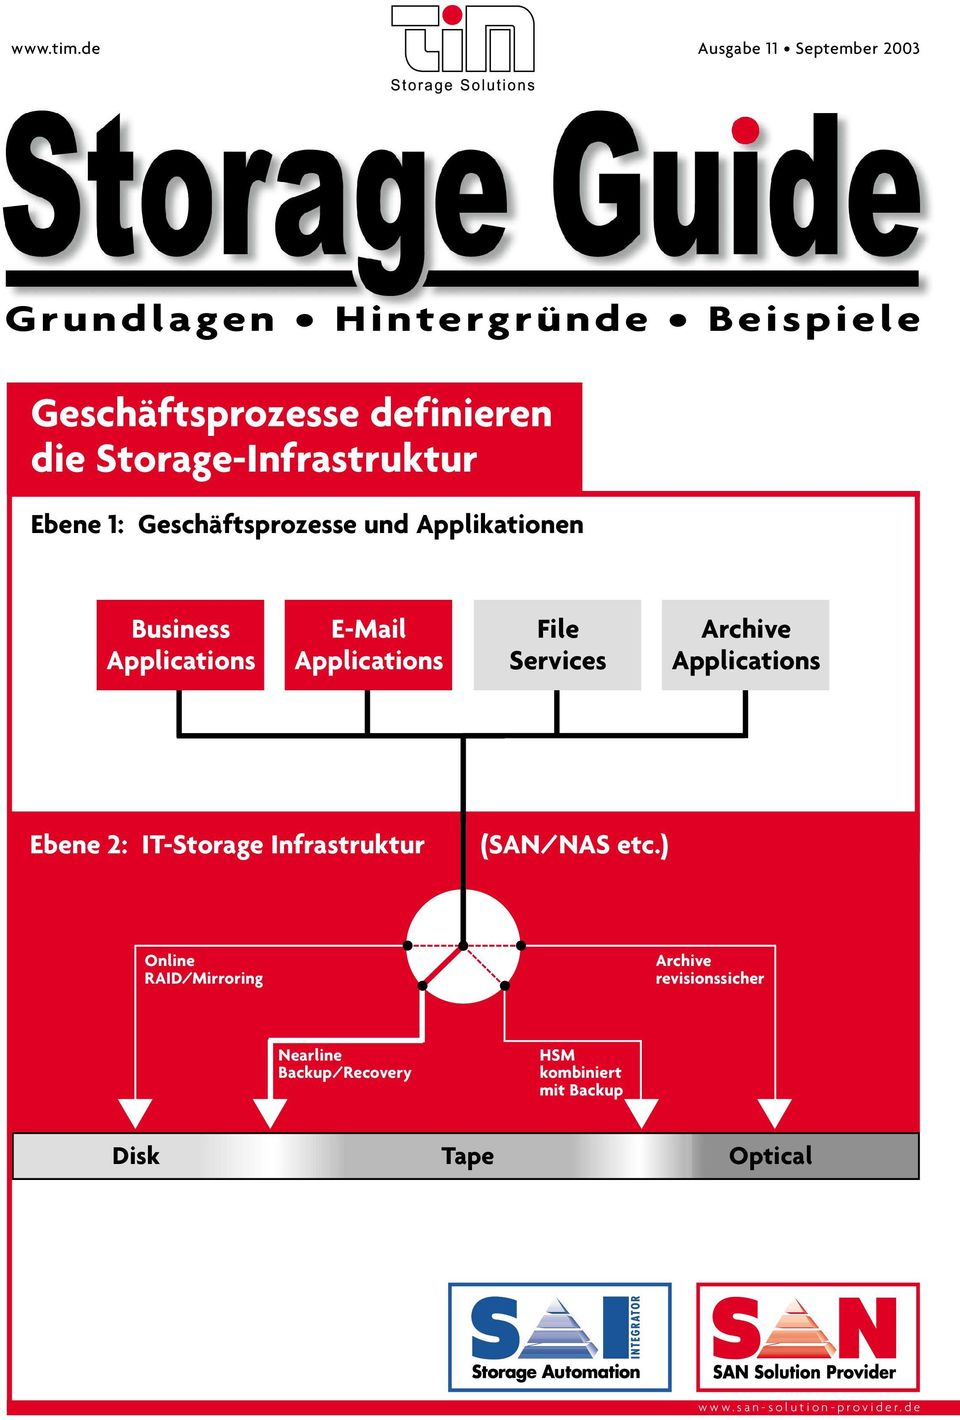 Storage-Infrastruktur Ebene 1: Geschäftsprozesse und Applikationen Business Applications E-Mail Applications